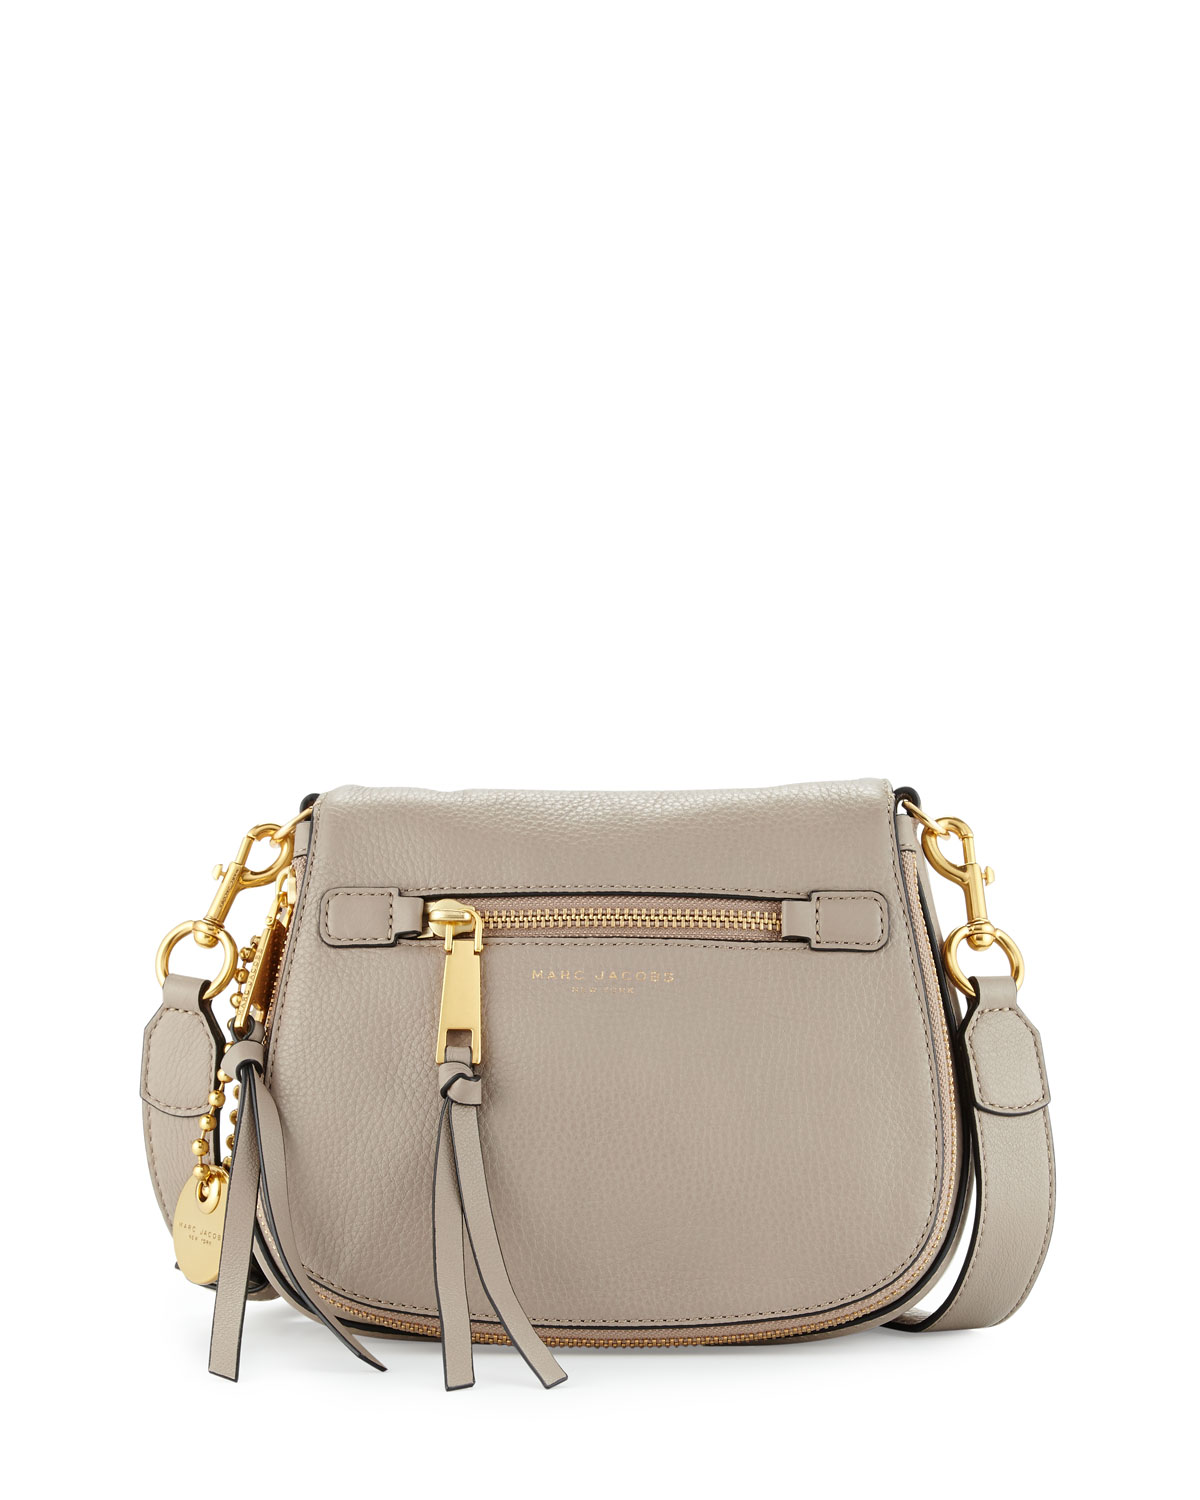 Marc Jacobs Recruit Small Leather Saddle Bag, Cement   Neiman Marcus 708e51e378